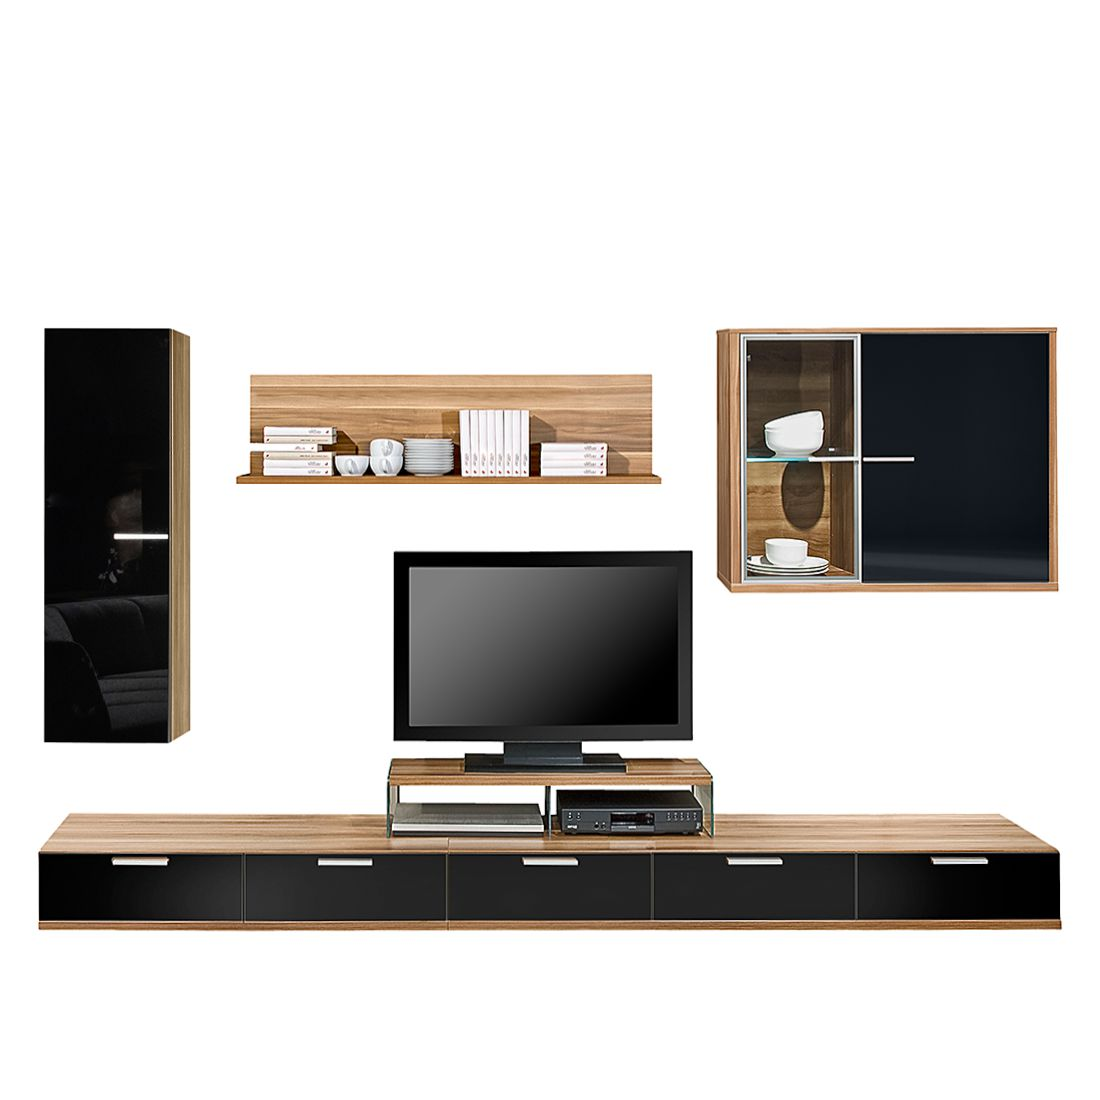 wohnwand game 5 teilig mit hochglanzabsetzung nussbaum. Black Bedroom Furniture Sets. Home Design Ideas